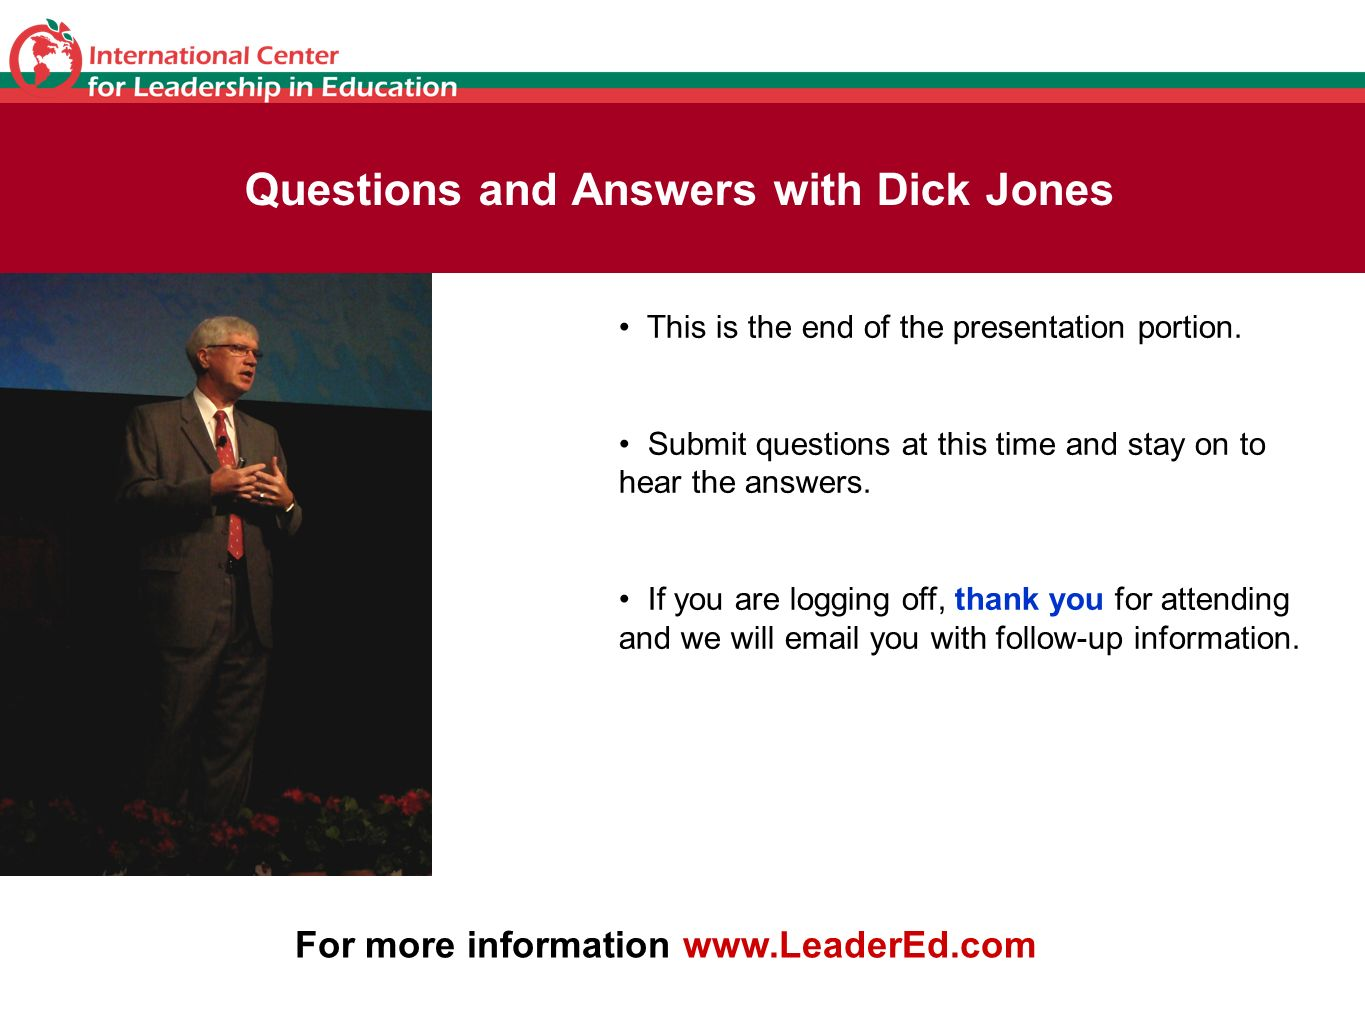 Questions and Answers with Dick Jones